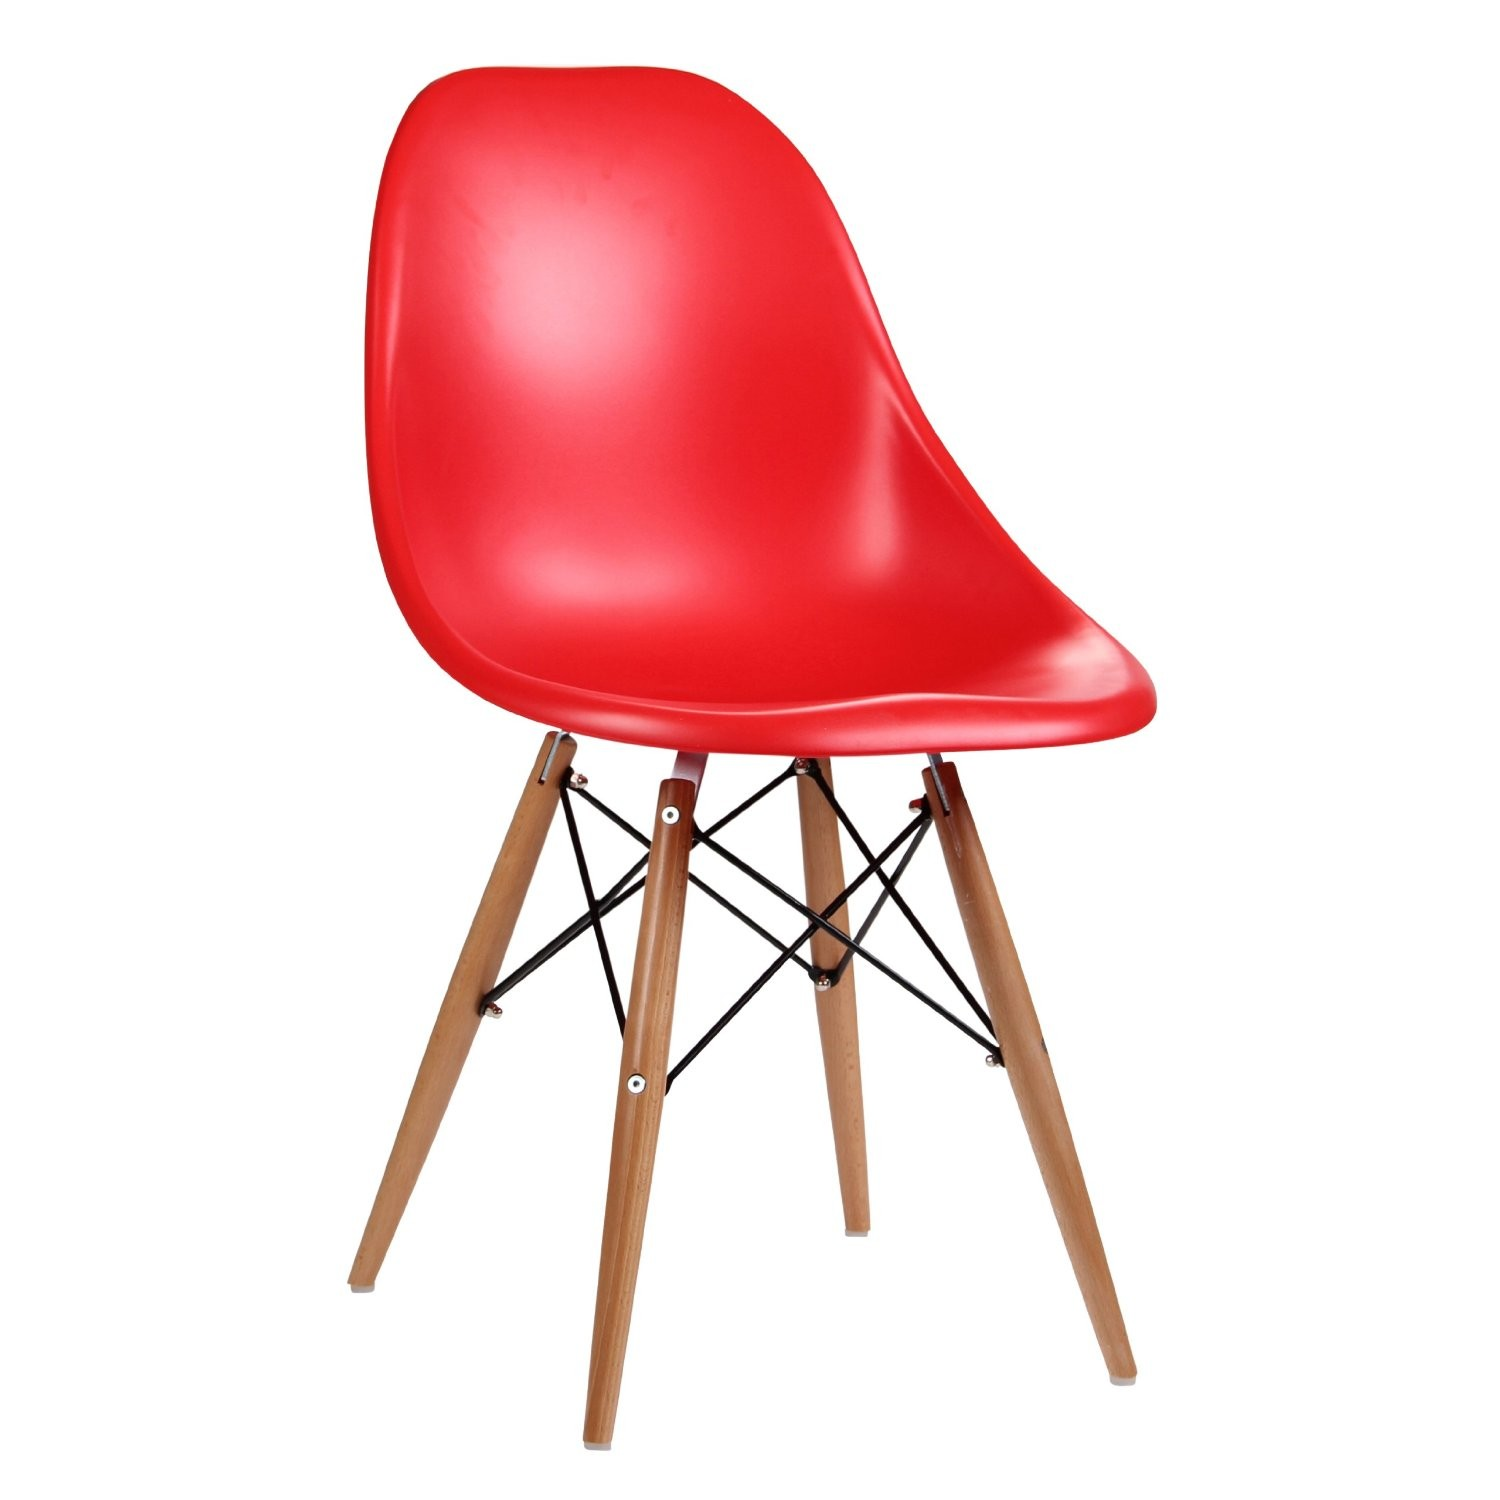 Eames Inspired Moulded Red Dining Chair